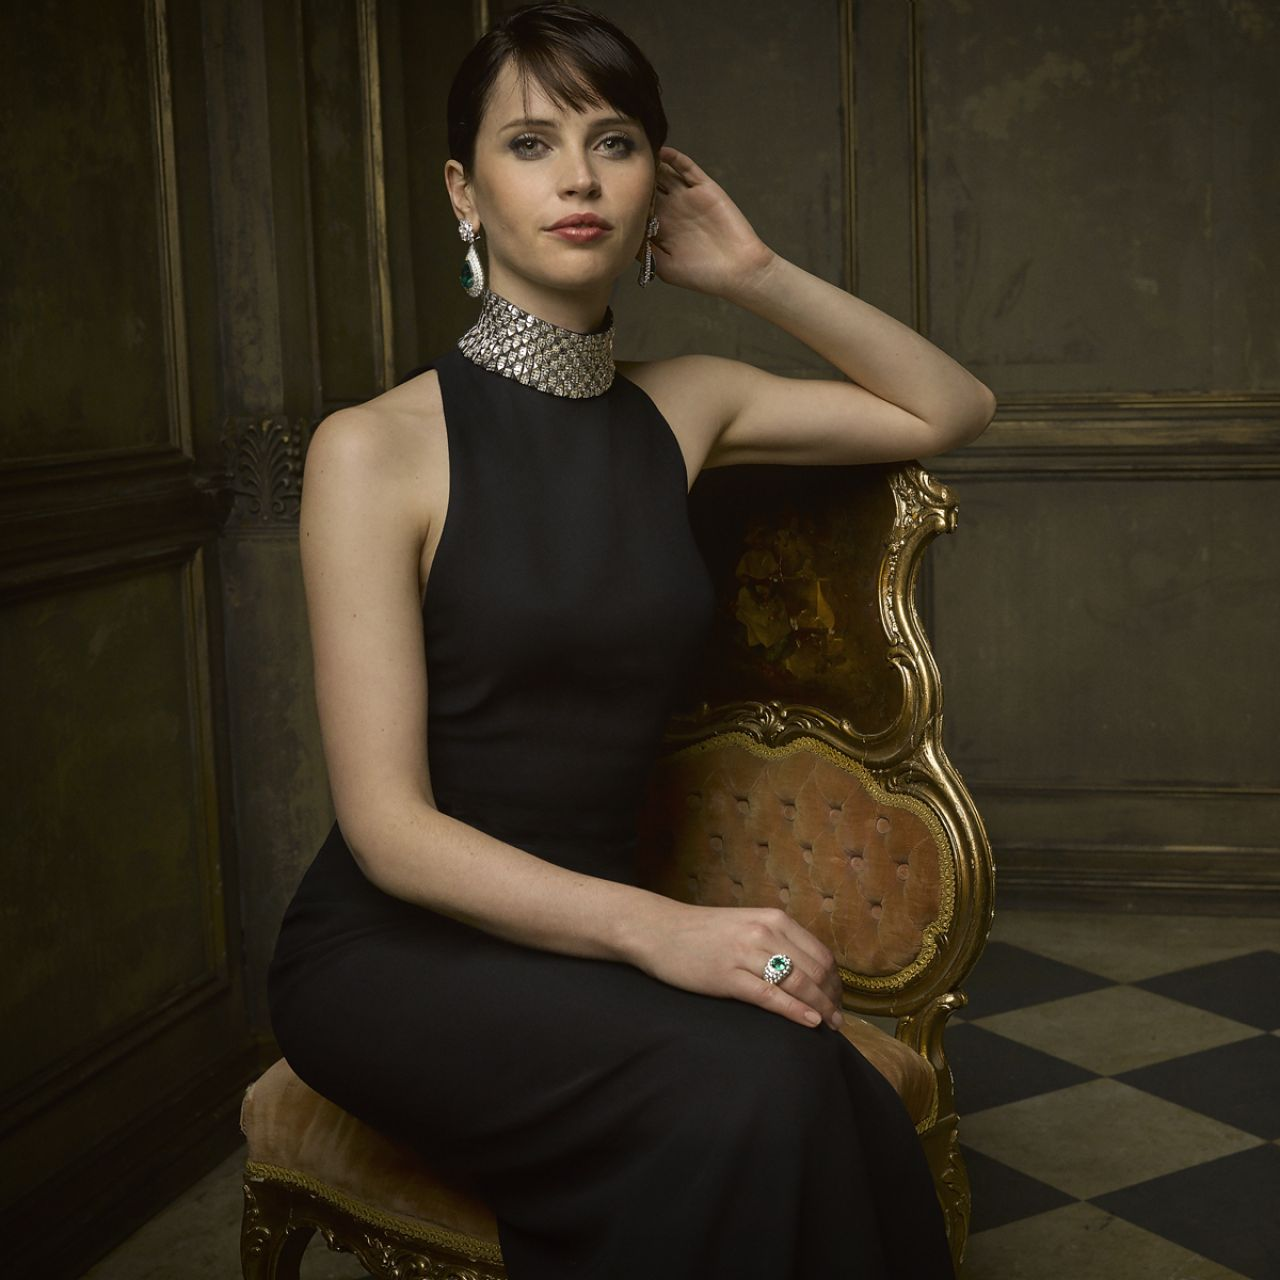 2015 Vanity Fair Oscar Party Portraits, Part III